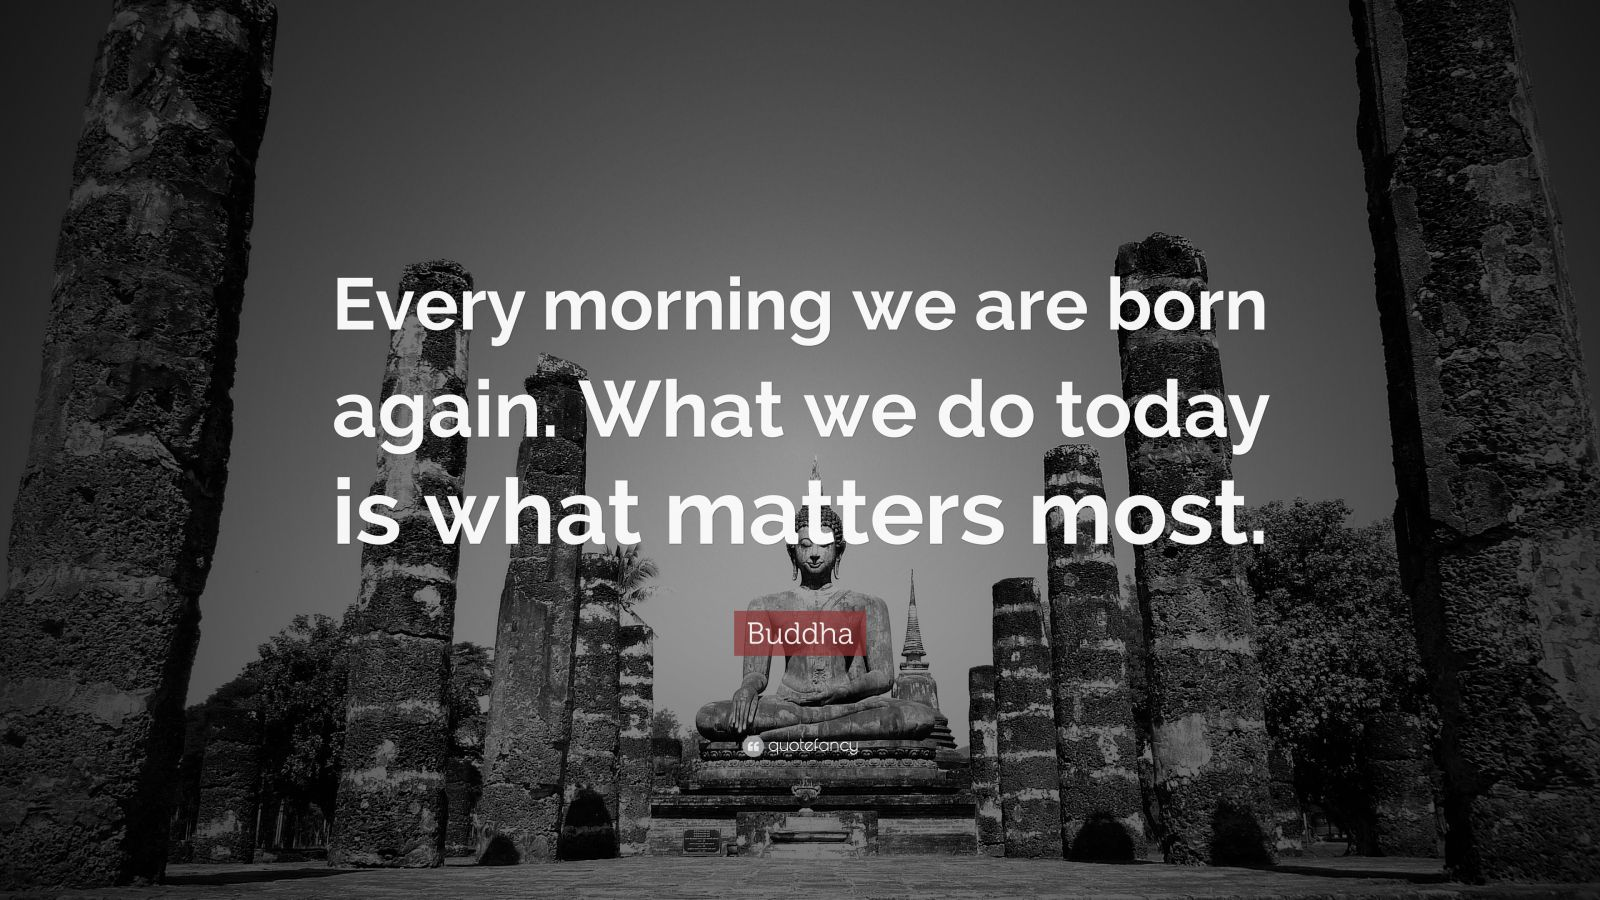 4674571-Buddha-Quote-Every-morning-we-are-born-again-What-we-do-today-is.jpg